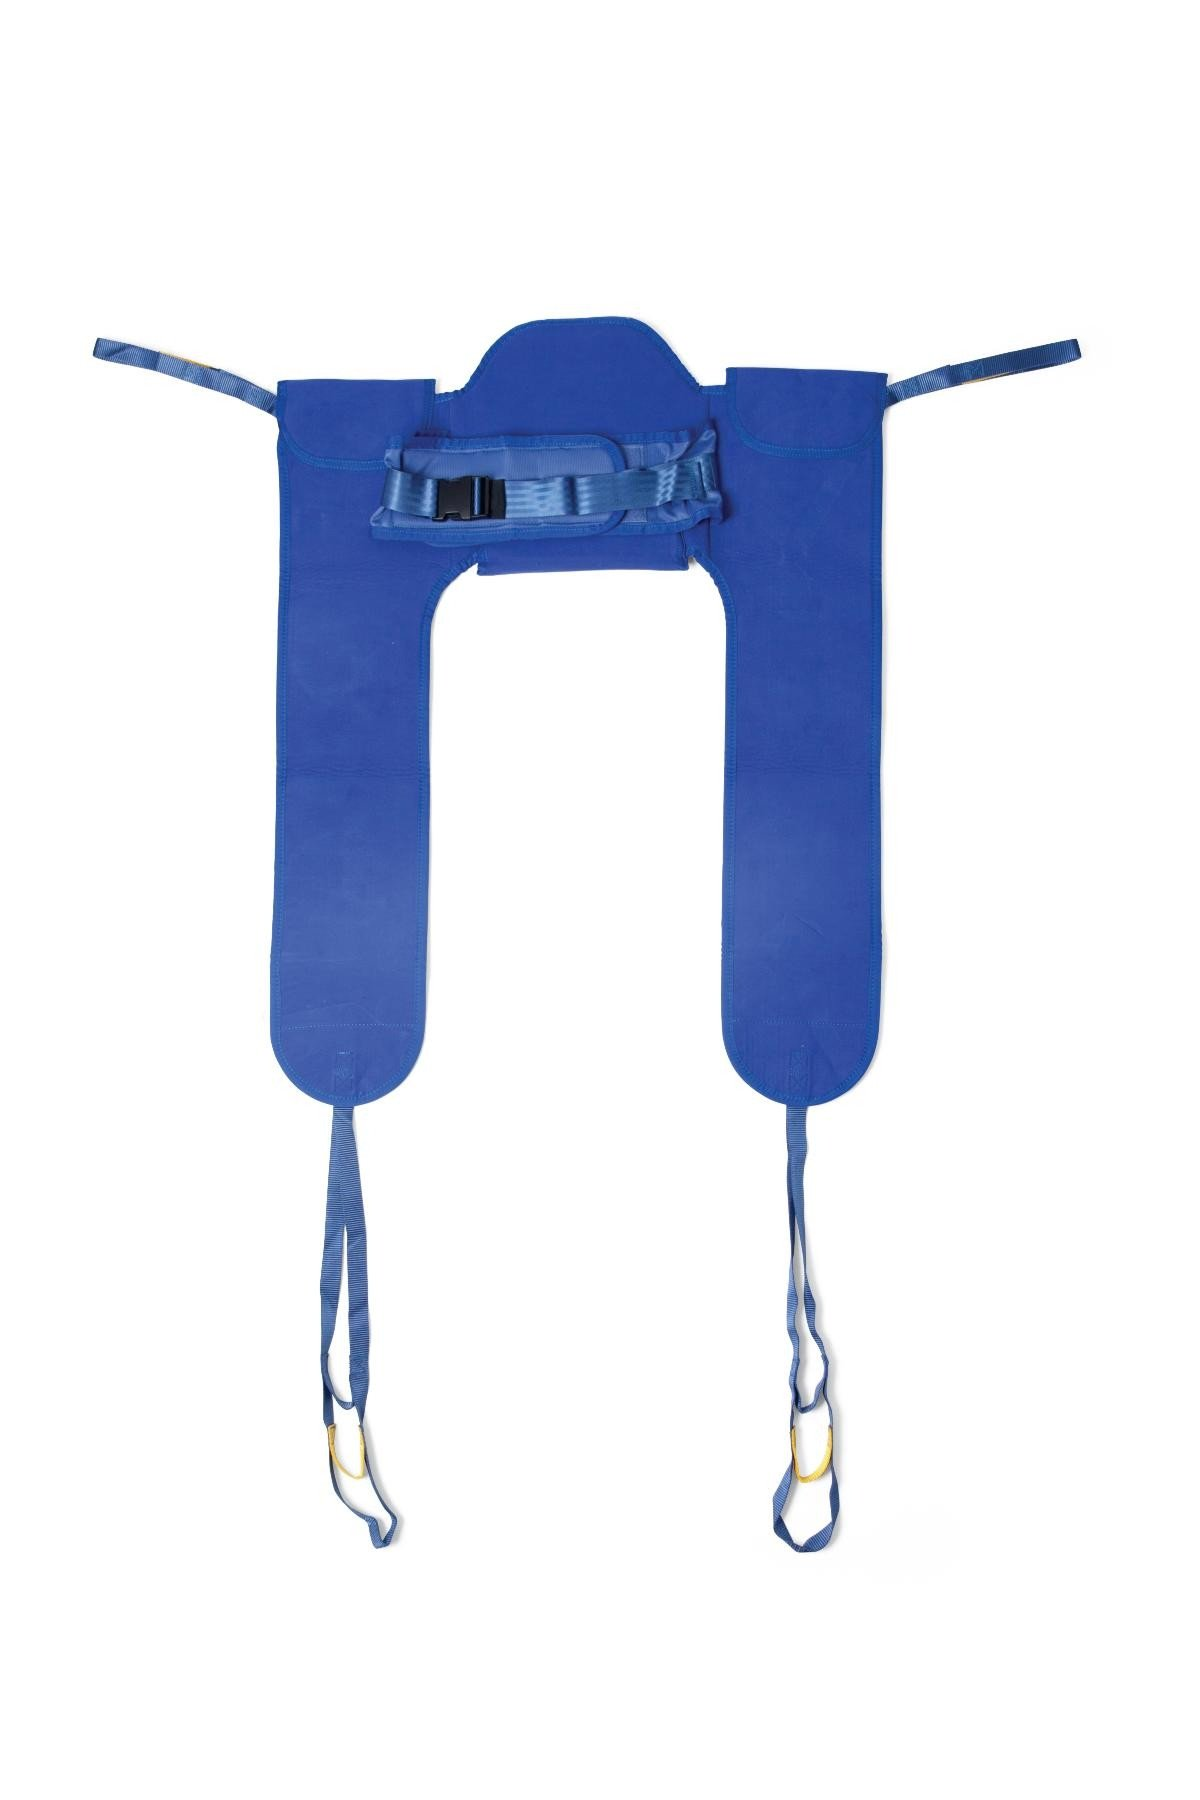 Medline Padded Toileting Sling